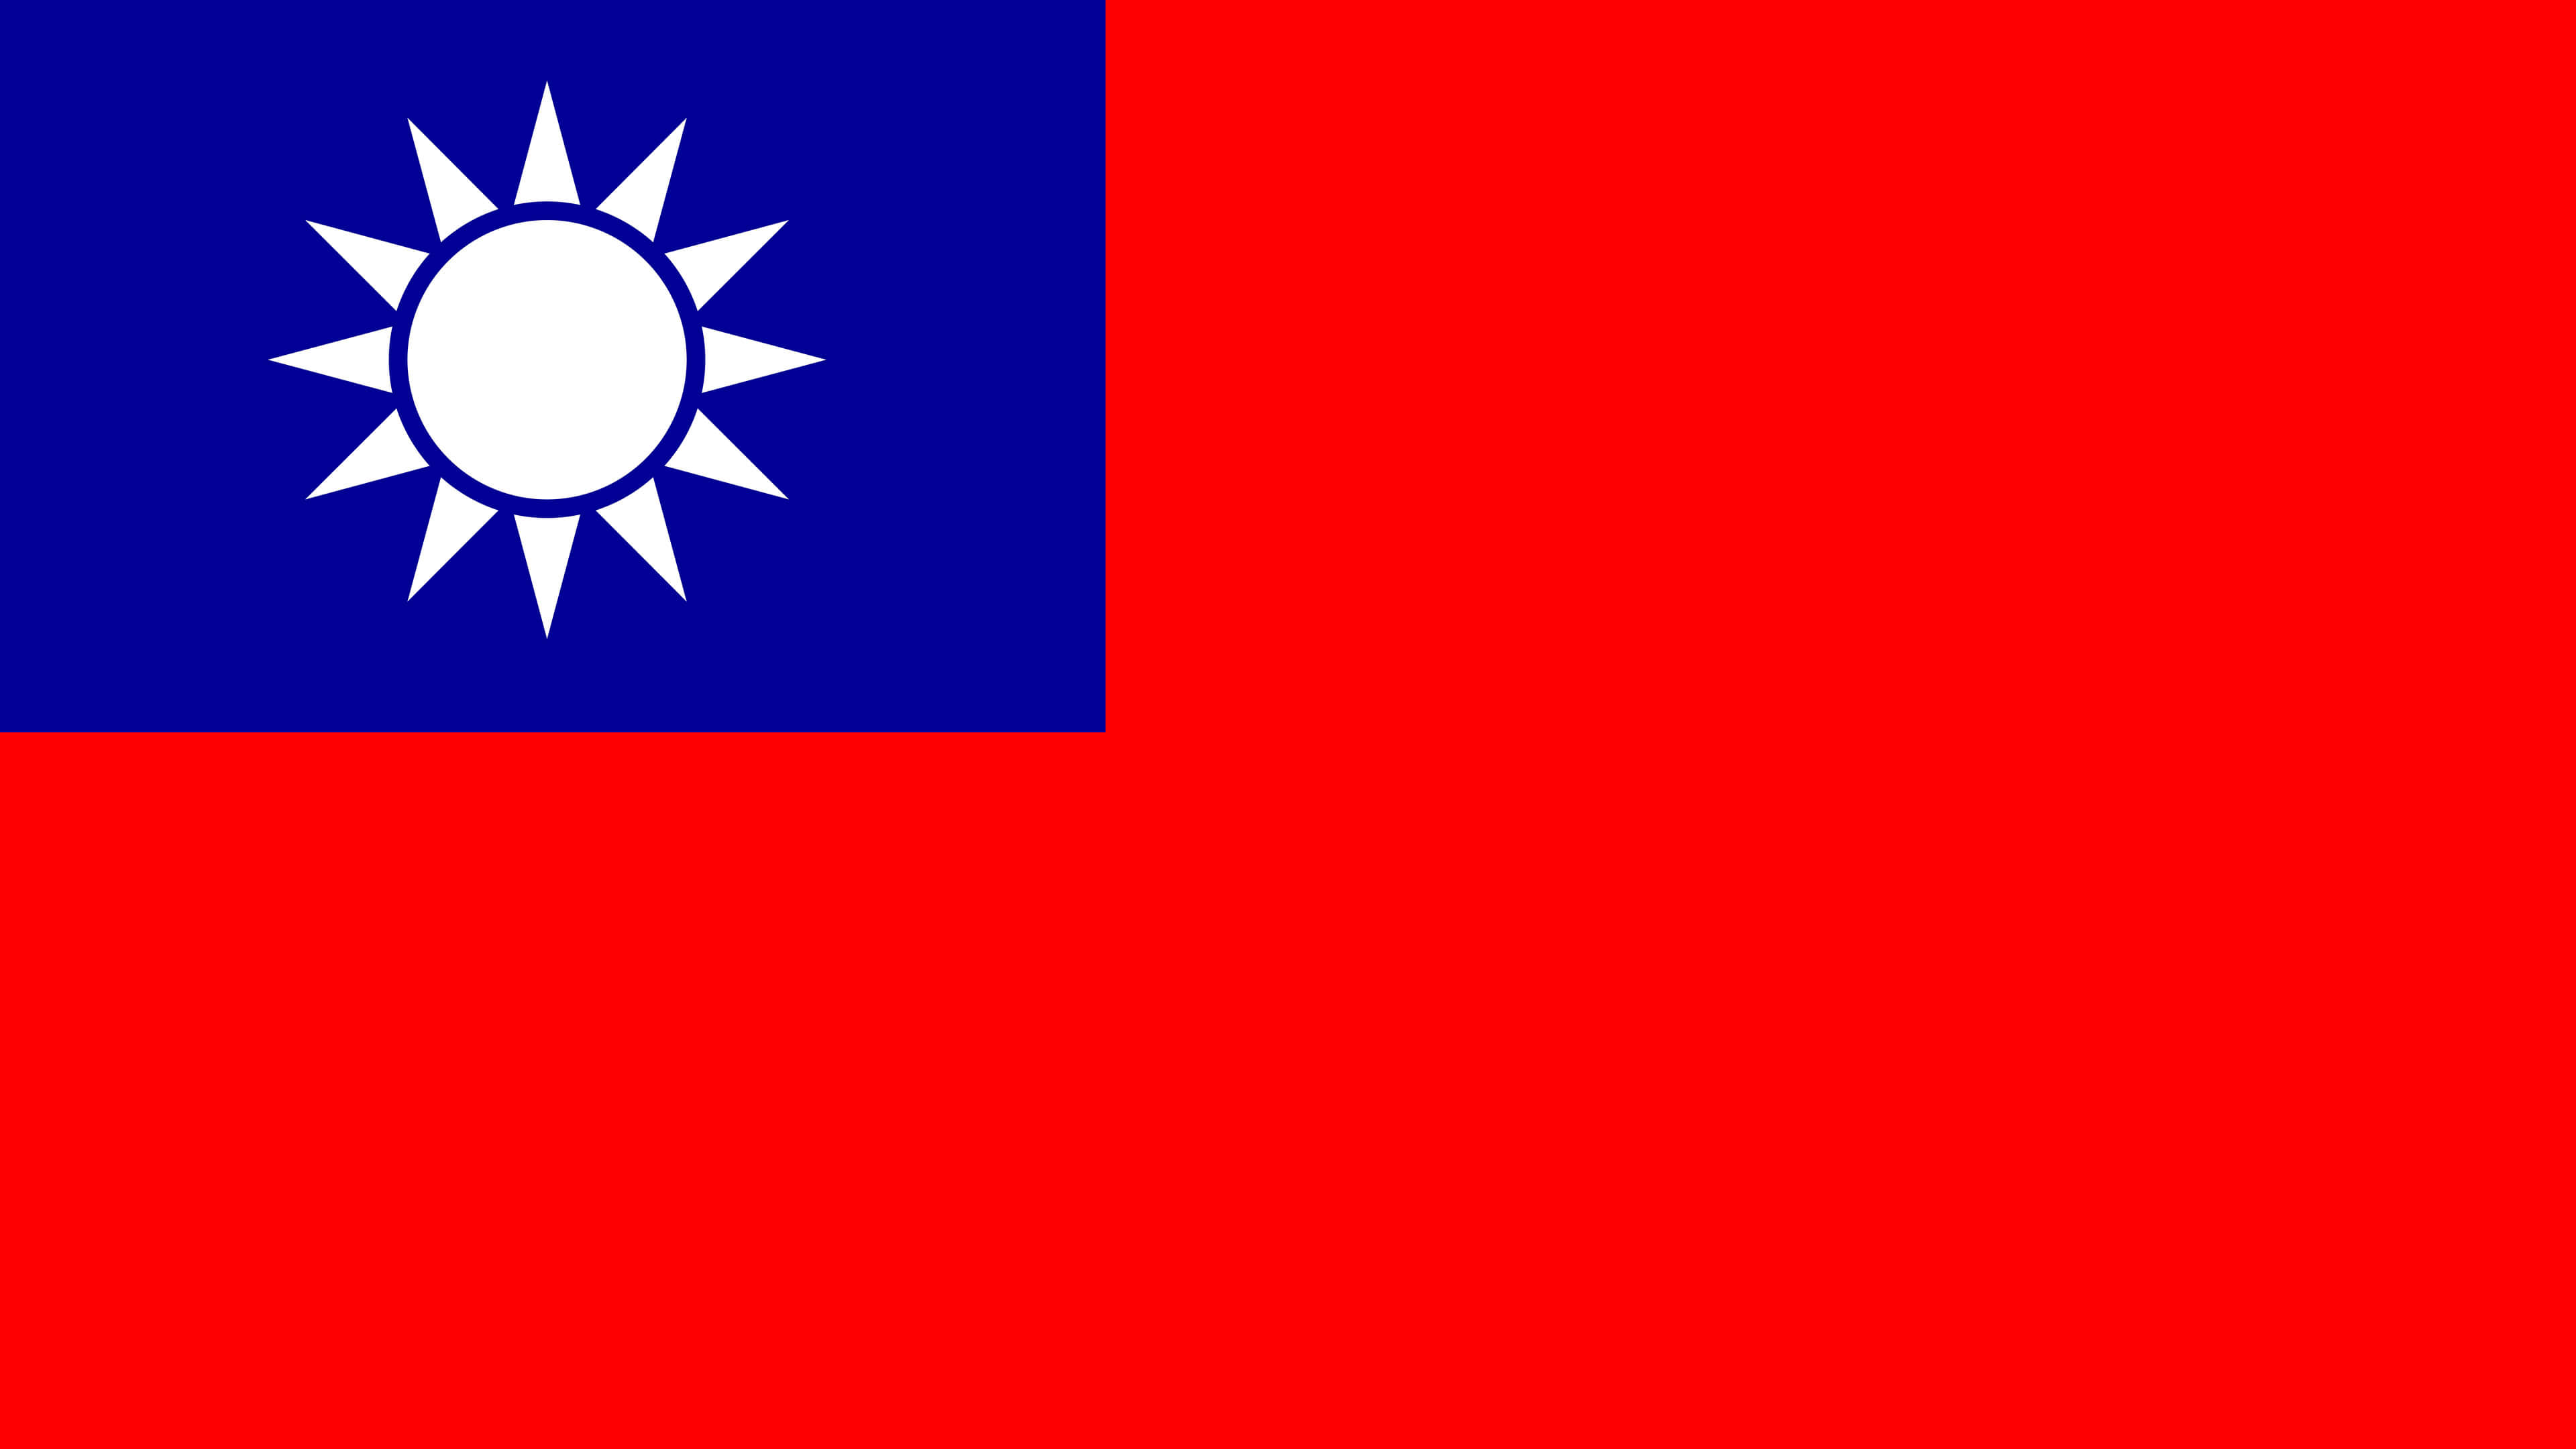 republic of china flag uhd 4k wallpaper